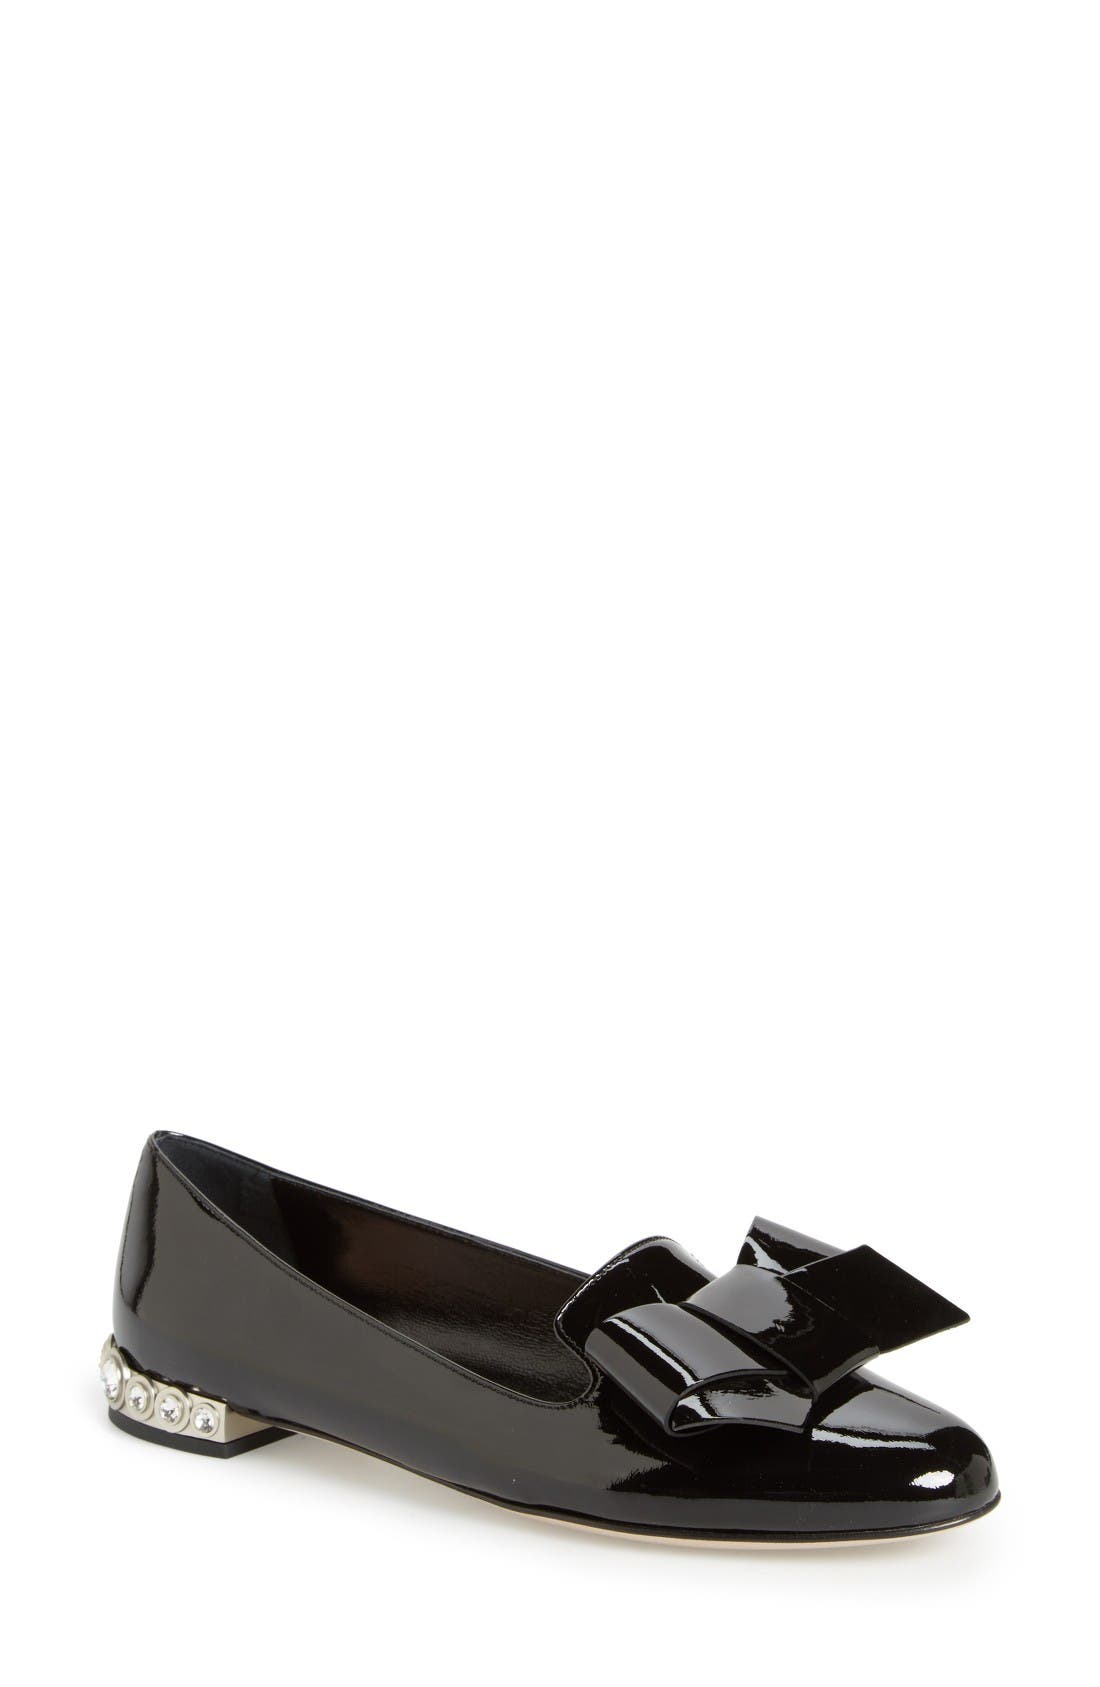 Miu Miu Bow Loafer (Women)